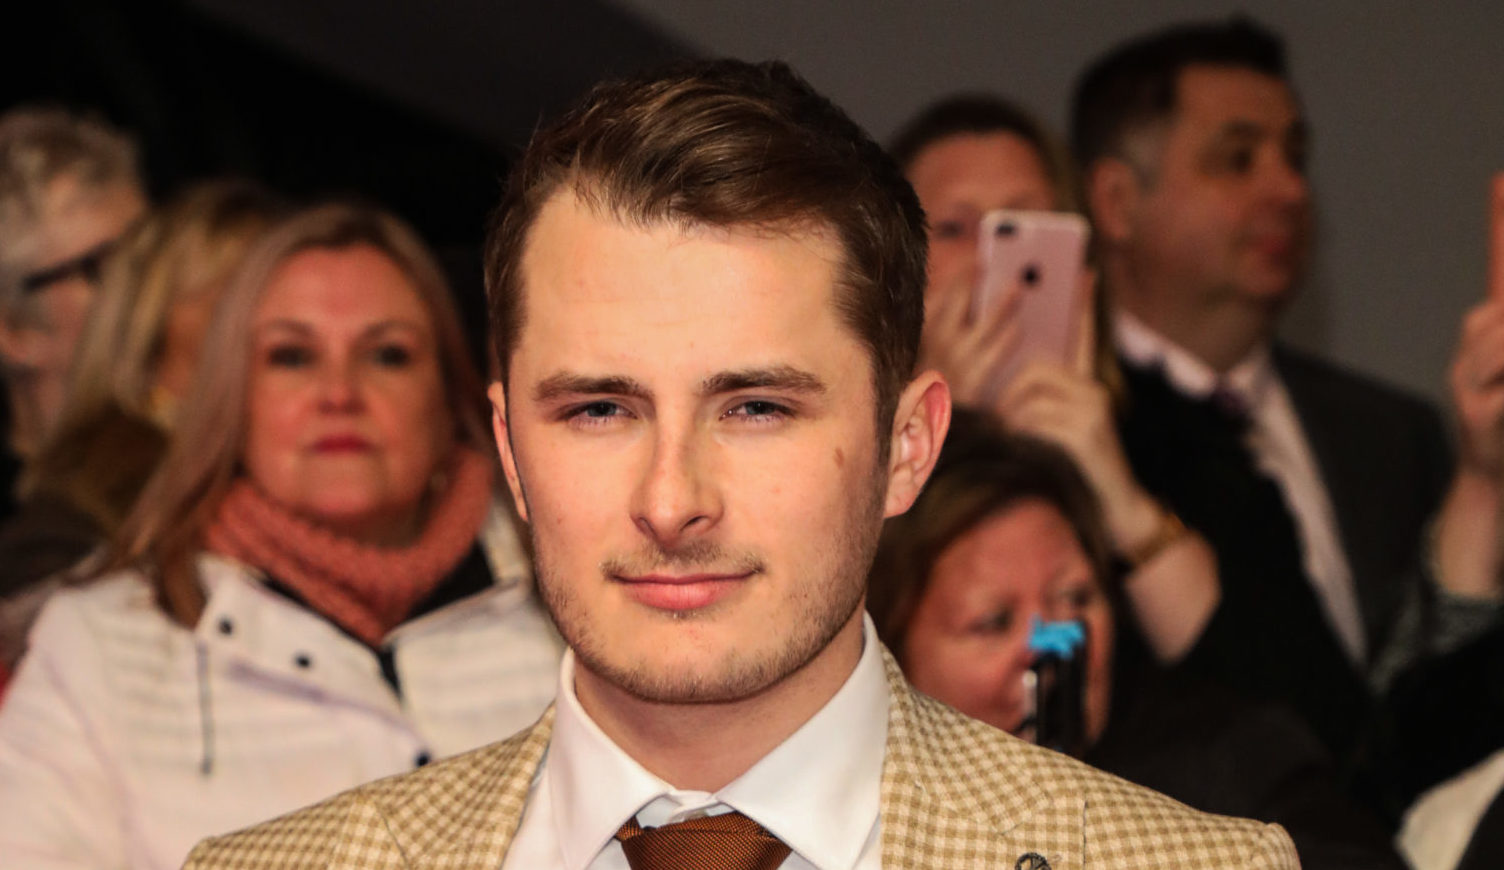 EastEnders star Max Bowden begs for help finding missing pupil